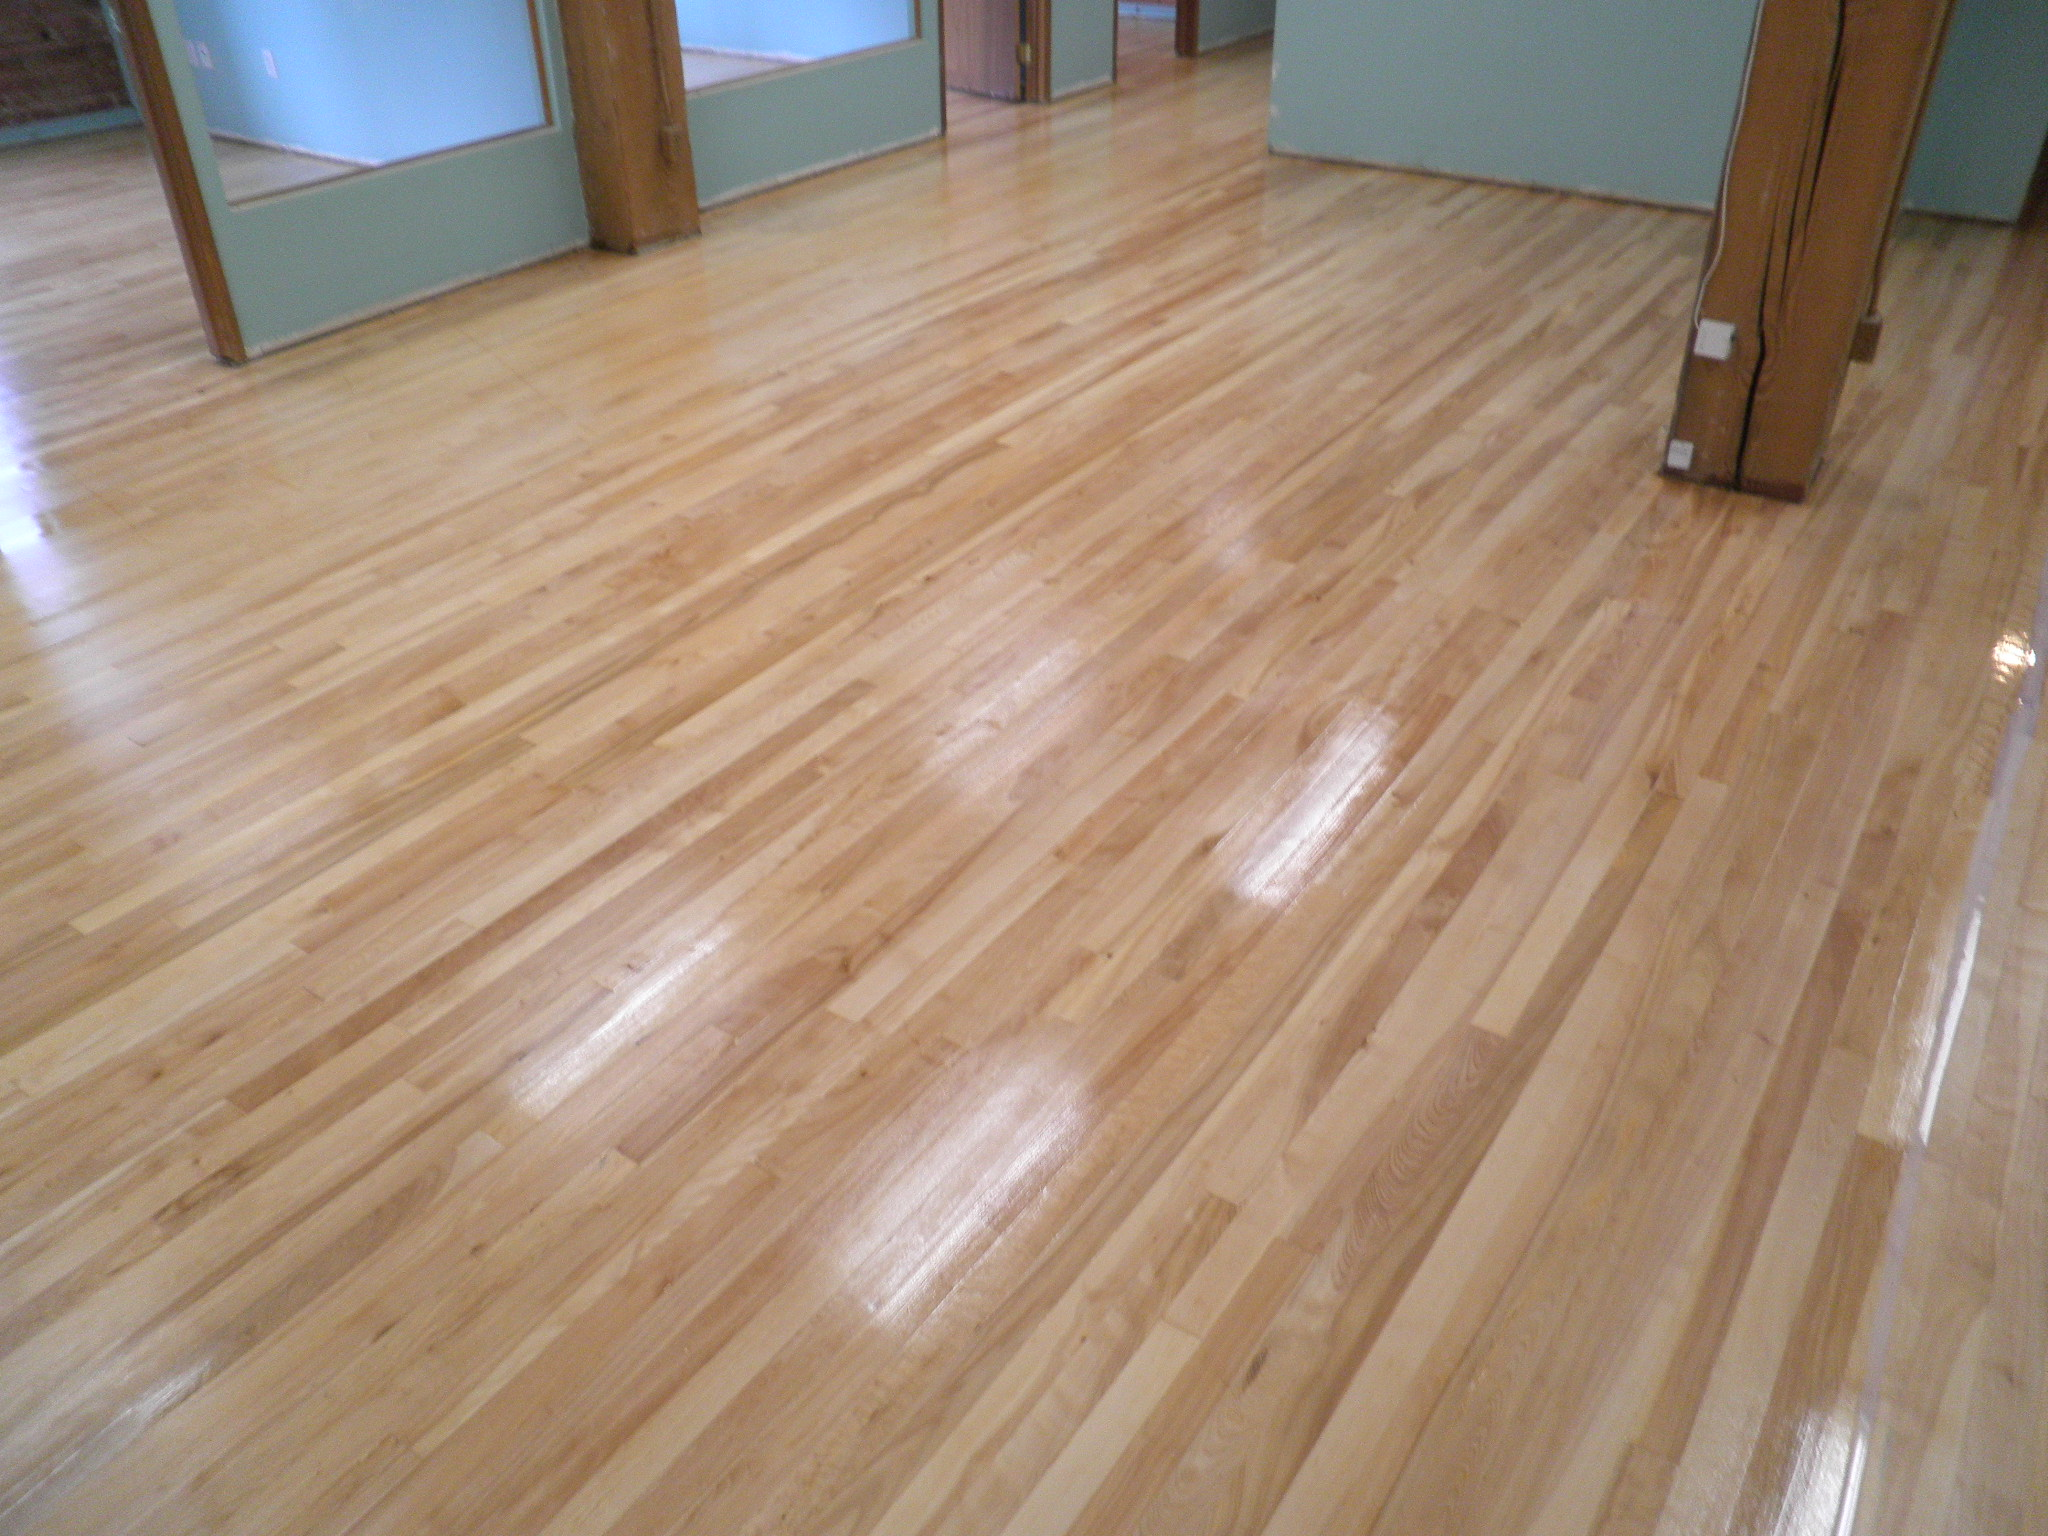 hardwood floor refinishing the hardwood floor sanding wood floor refinishing wood floor resurfacing process explained